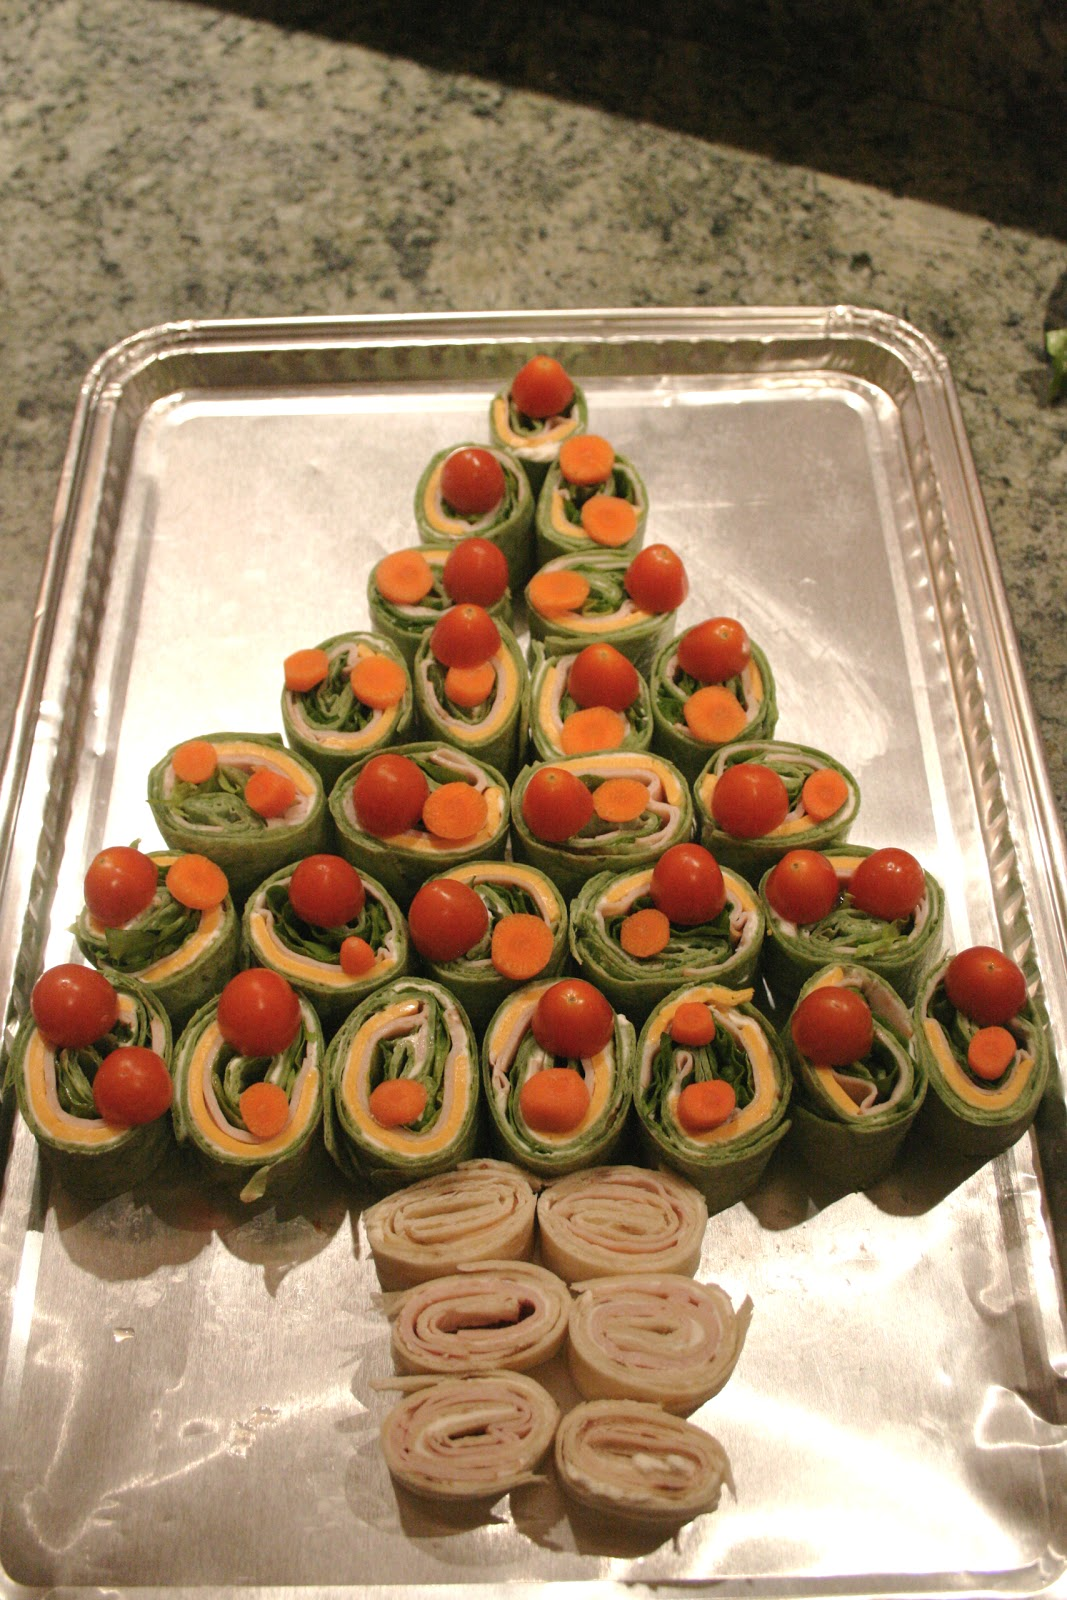 The nesting corral christmas tree roll ups - Christmas tree shaped appetizers ...